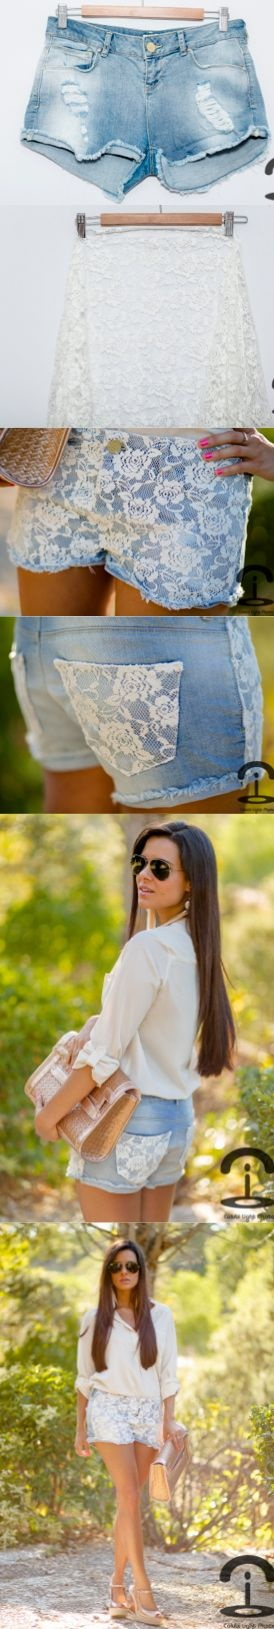 DIY Lace shorts, definitly doing this! but i'd keep the pockets in the front denim.